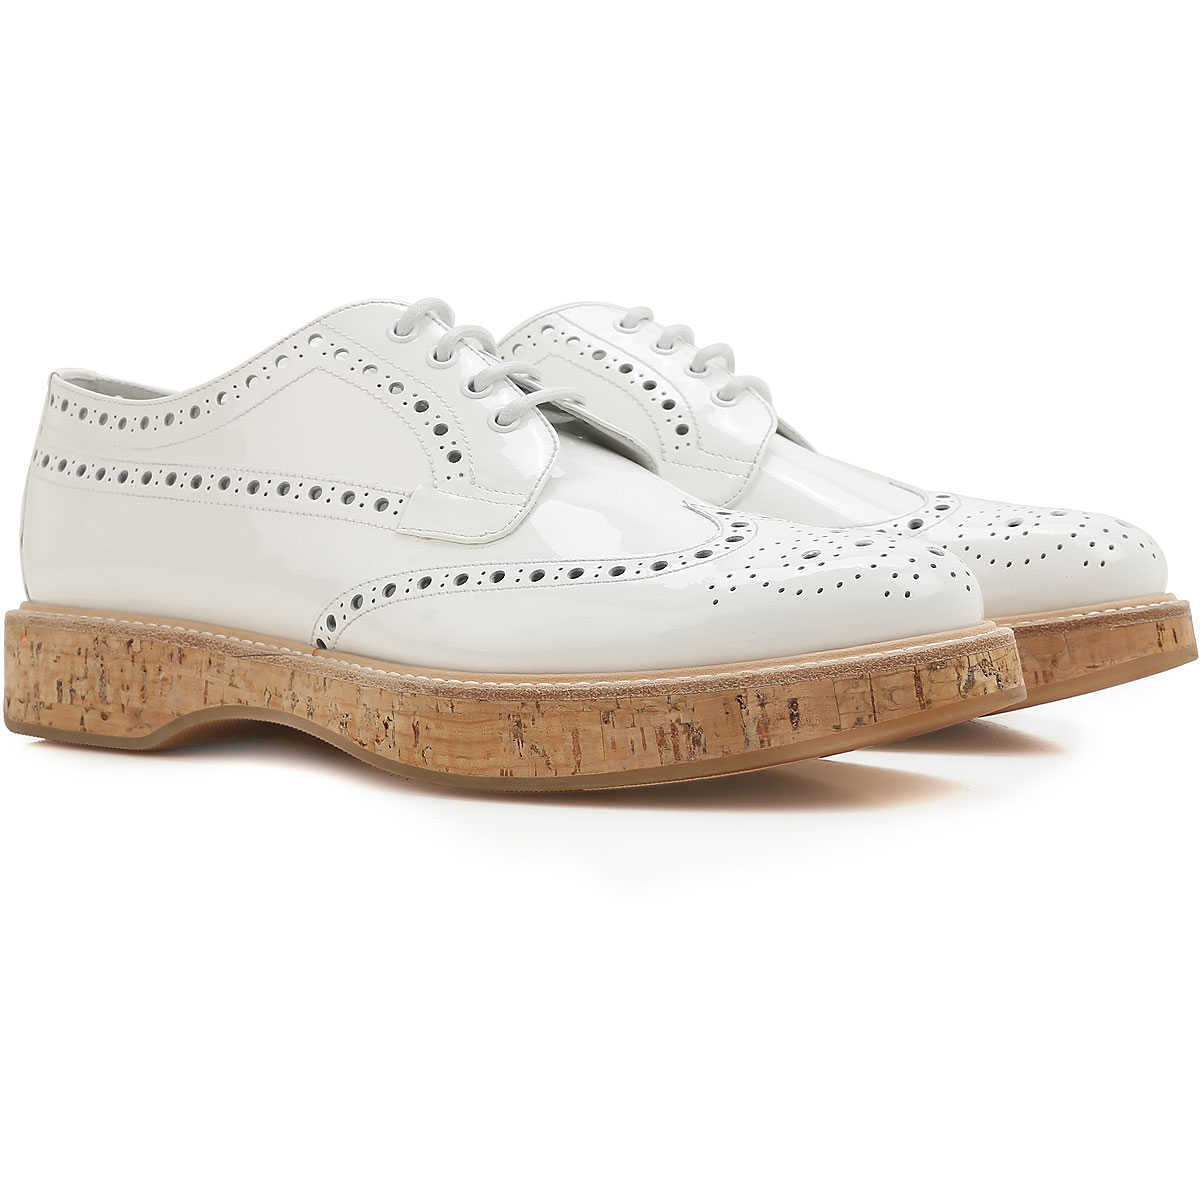 Church's Oxford Lace up Shoes for Women On Sale in Outlet White UK - GOOFASH